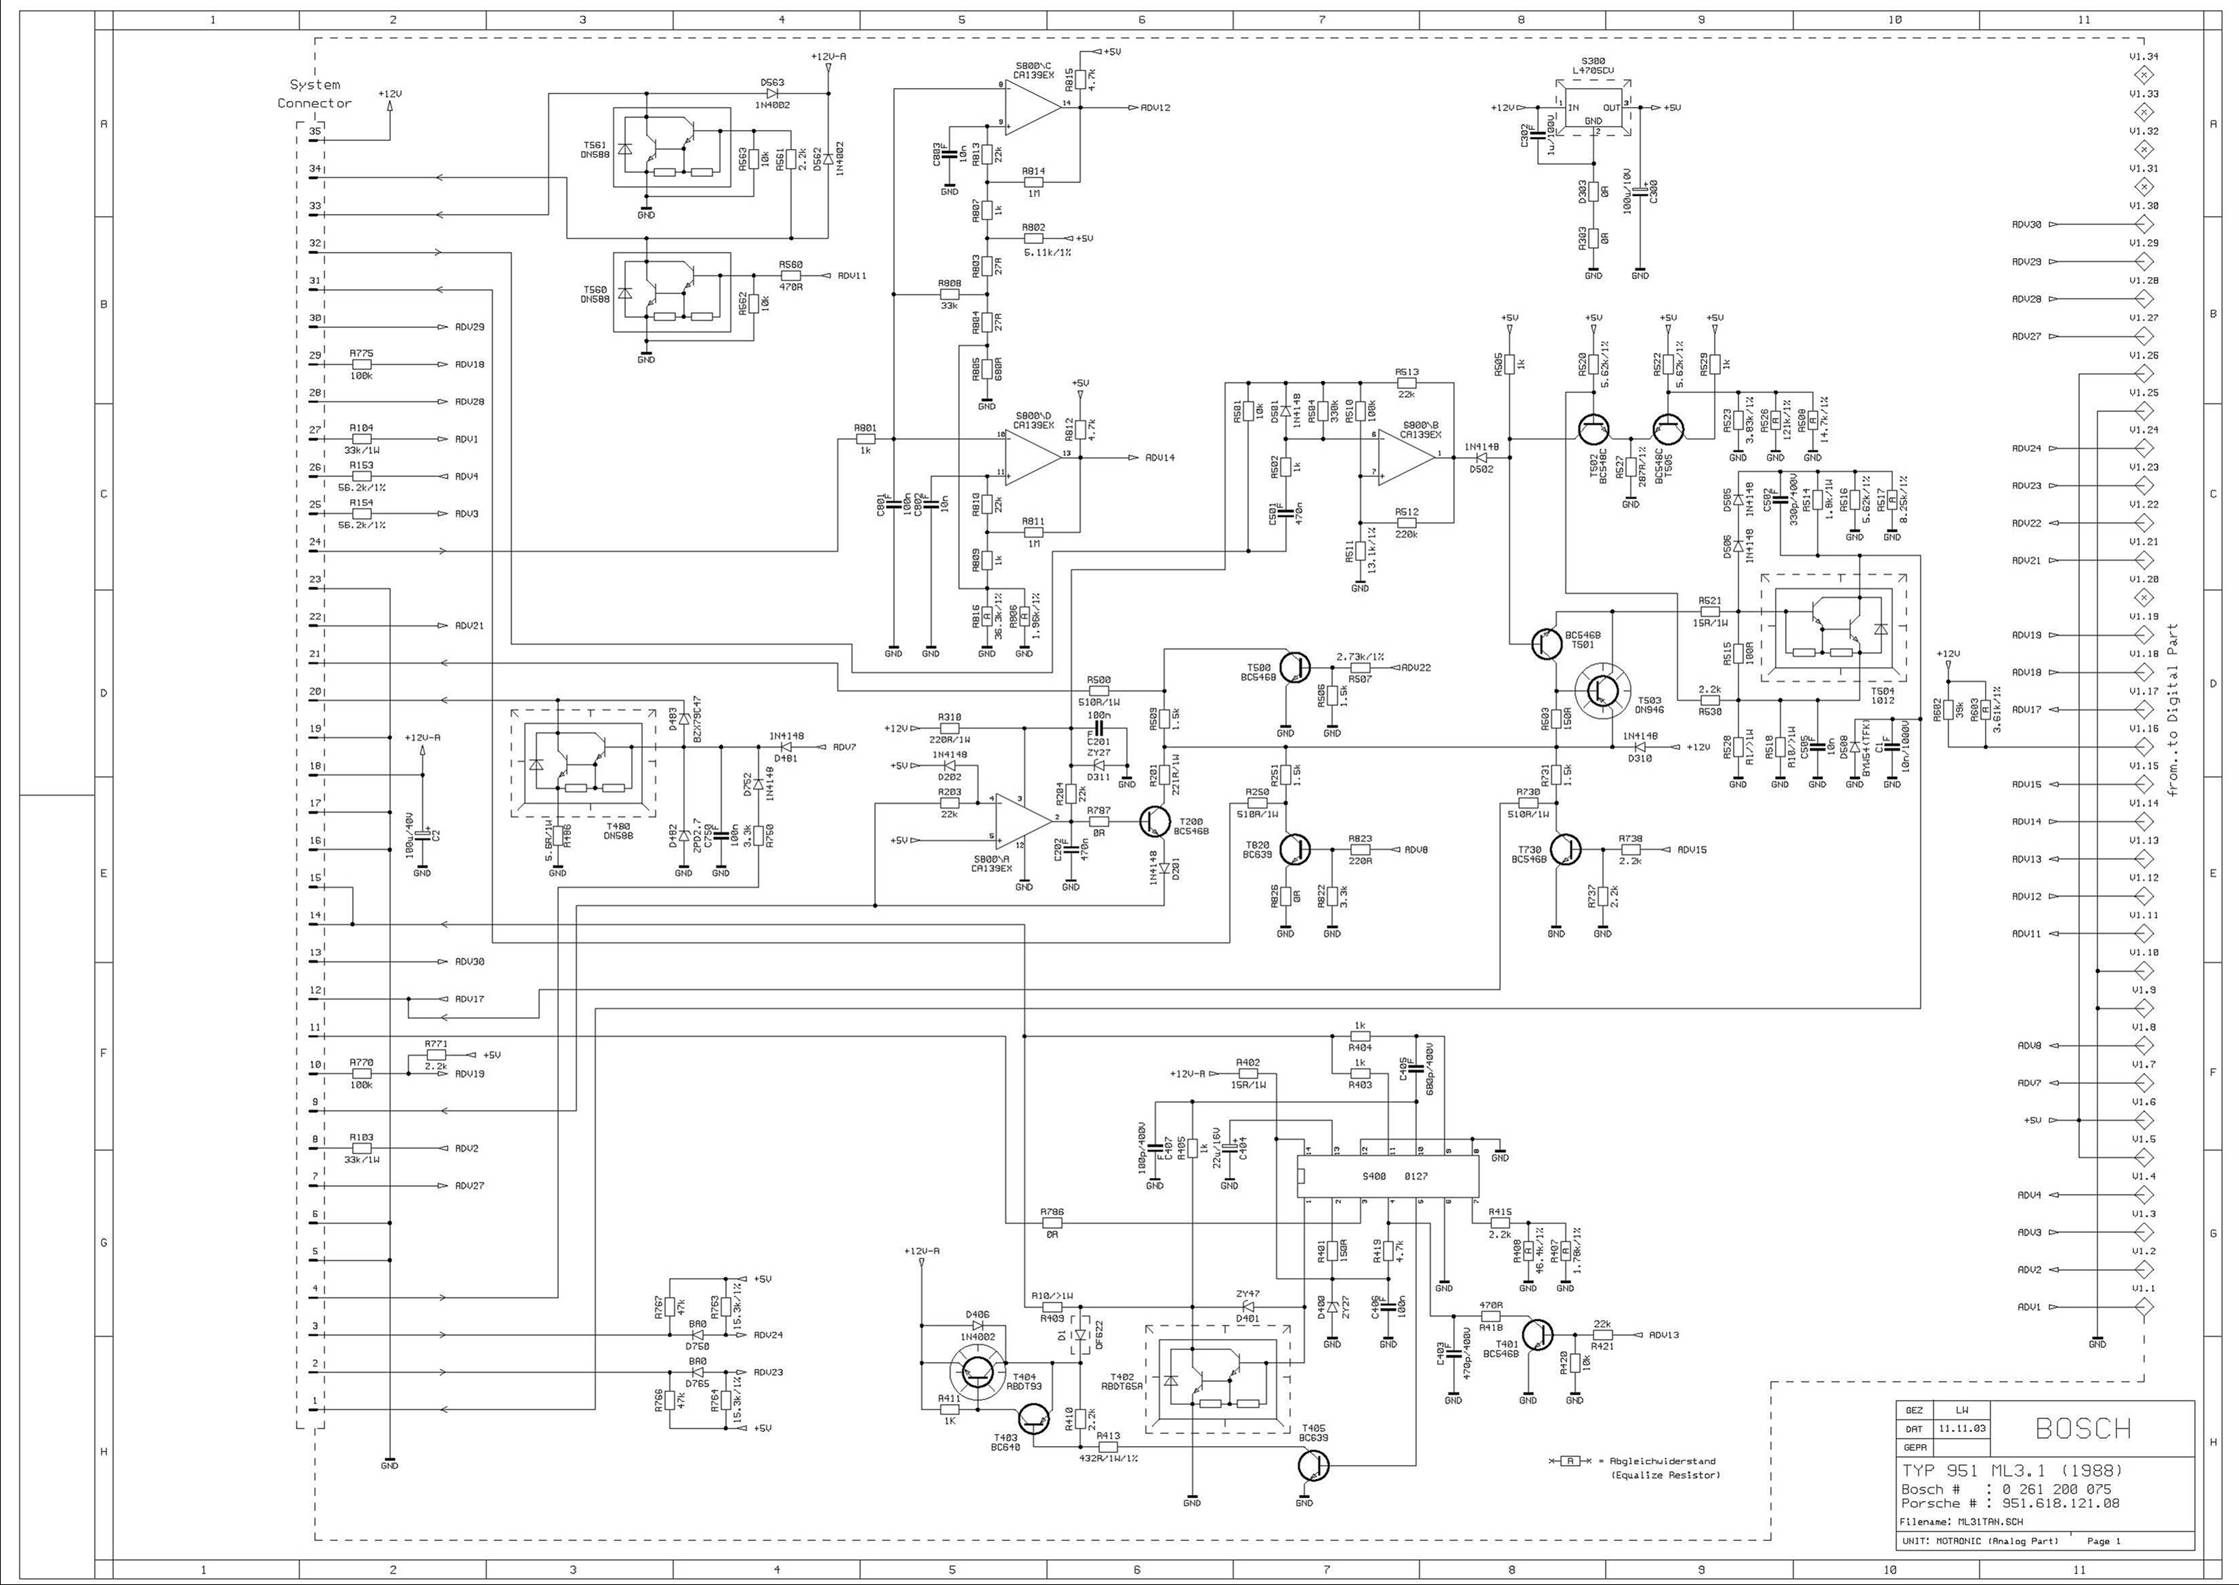 dme wiring diagram 944 turbo rh clarks garage com Porsche 944 Wiring-Diagram porsche 968 radio wiring diagram